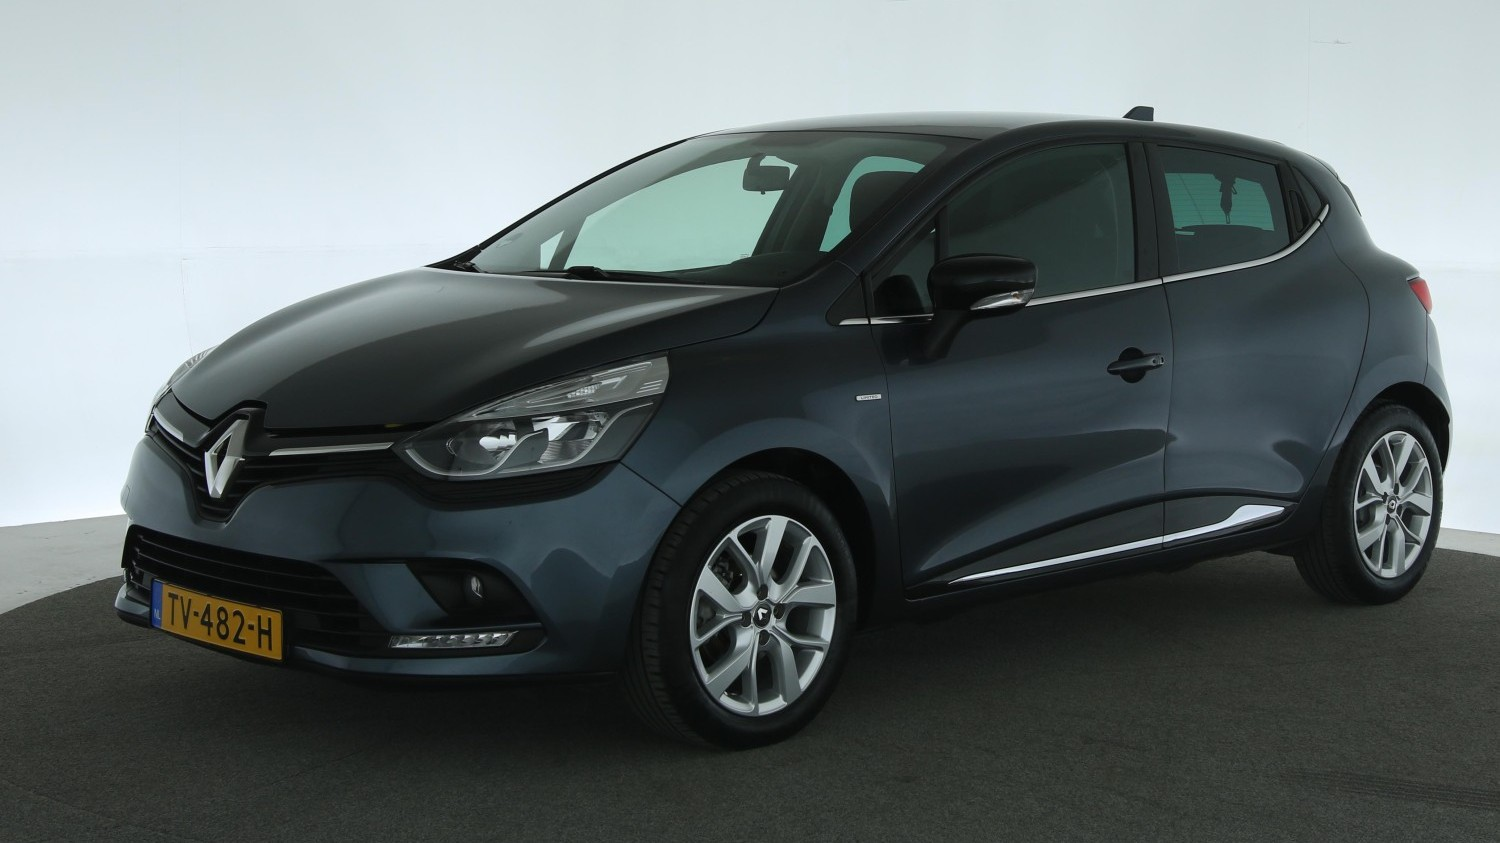 Renault Clio Hatchback 2018 TV-482-H 1